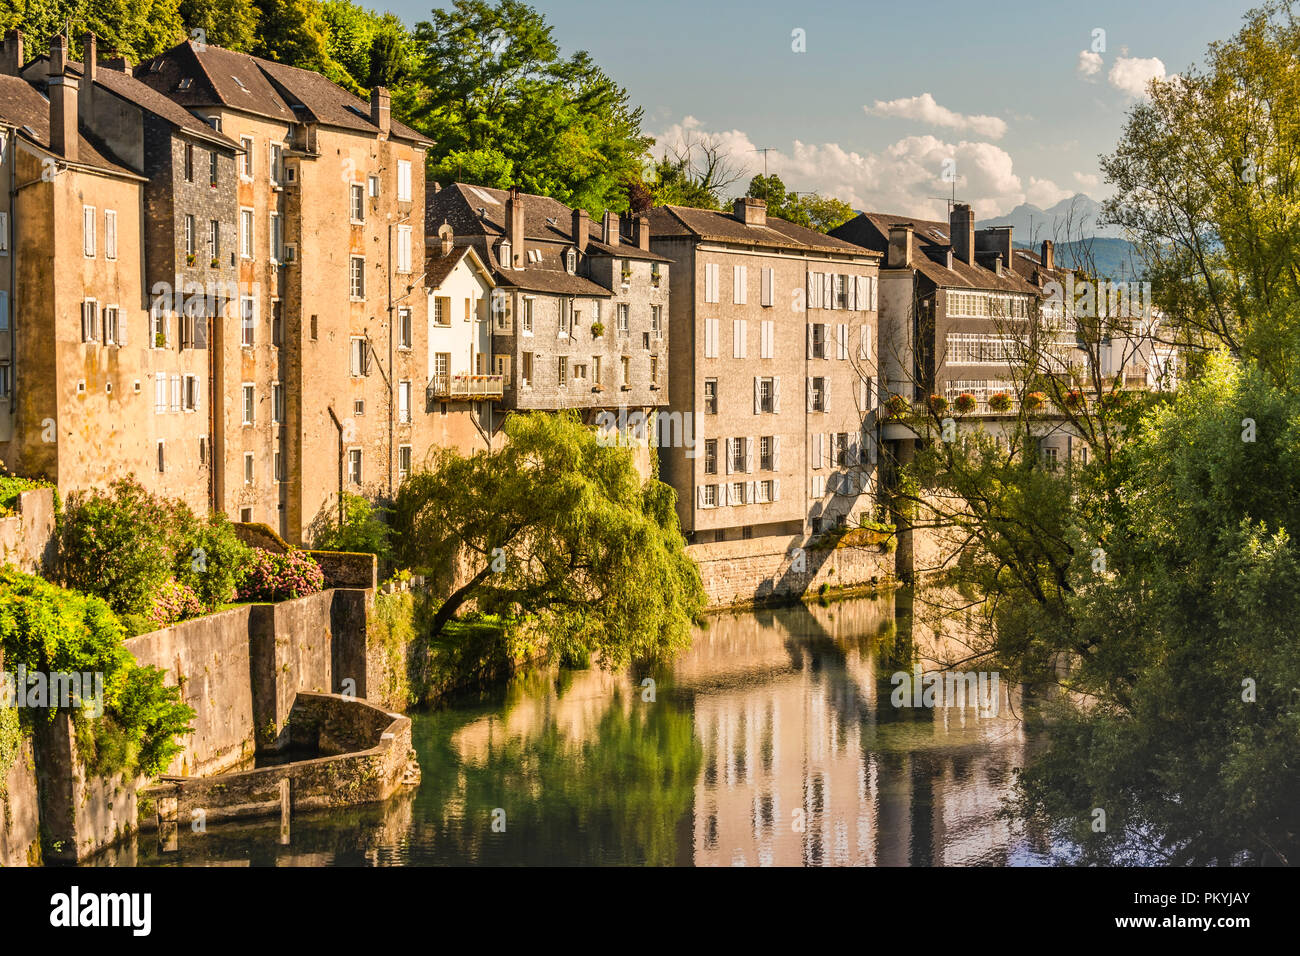 Typical French landscape in the interior of the country on the Oloron river. Saint Marie Oloron france - Stock Image